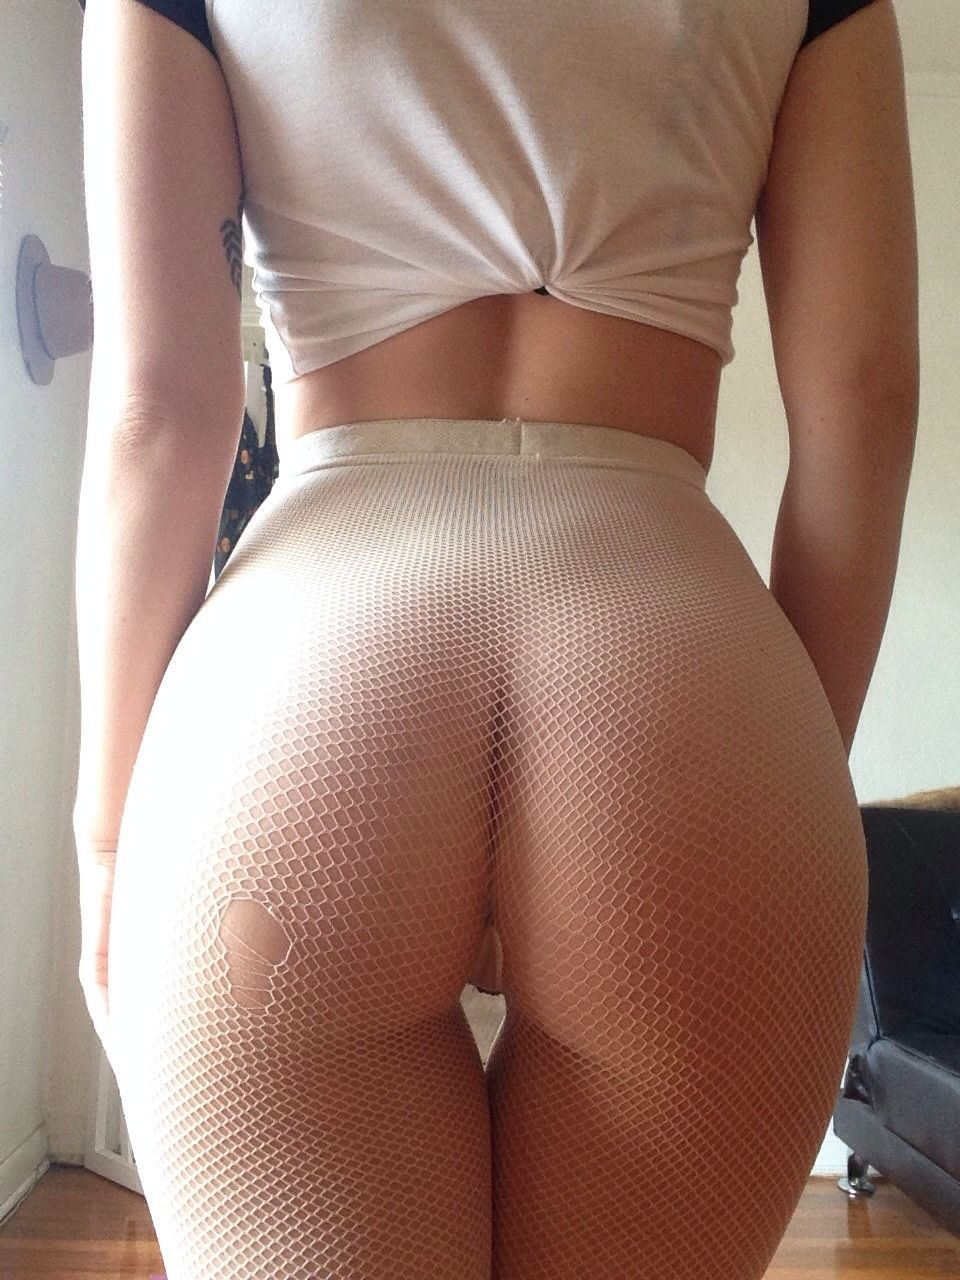 Sexy hot pants pics